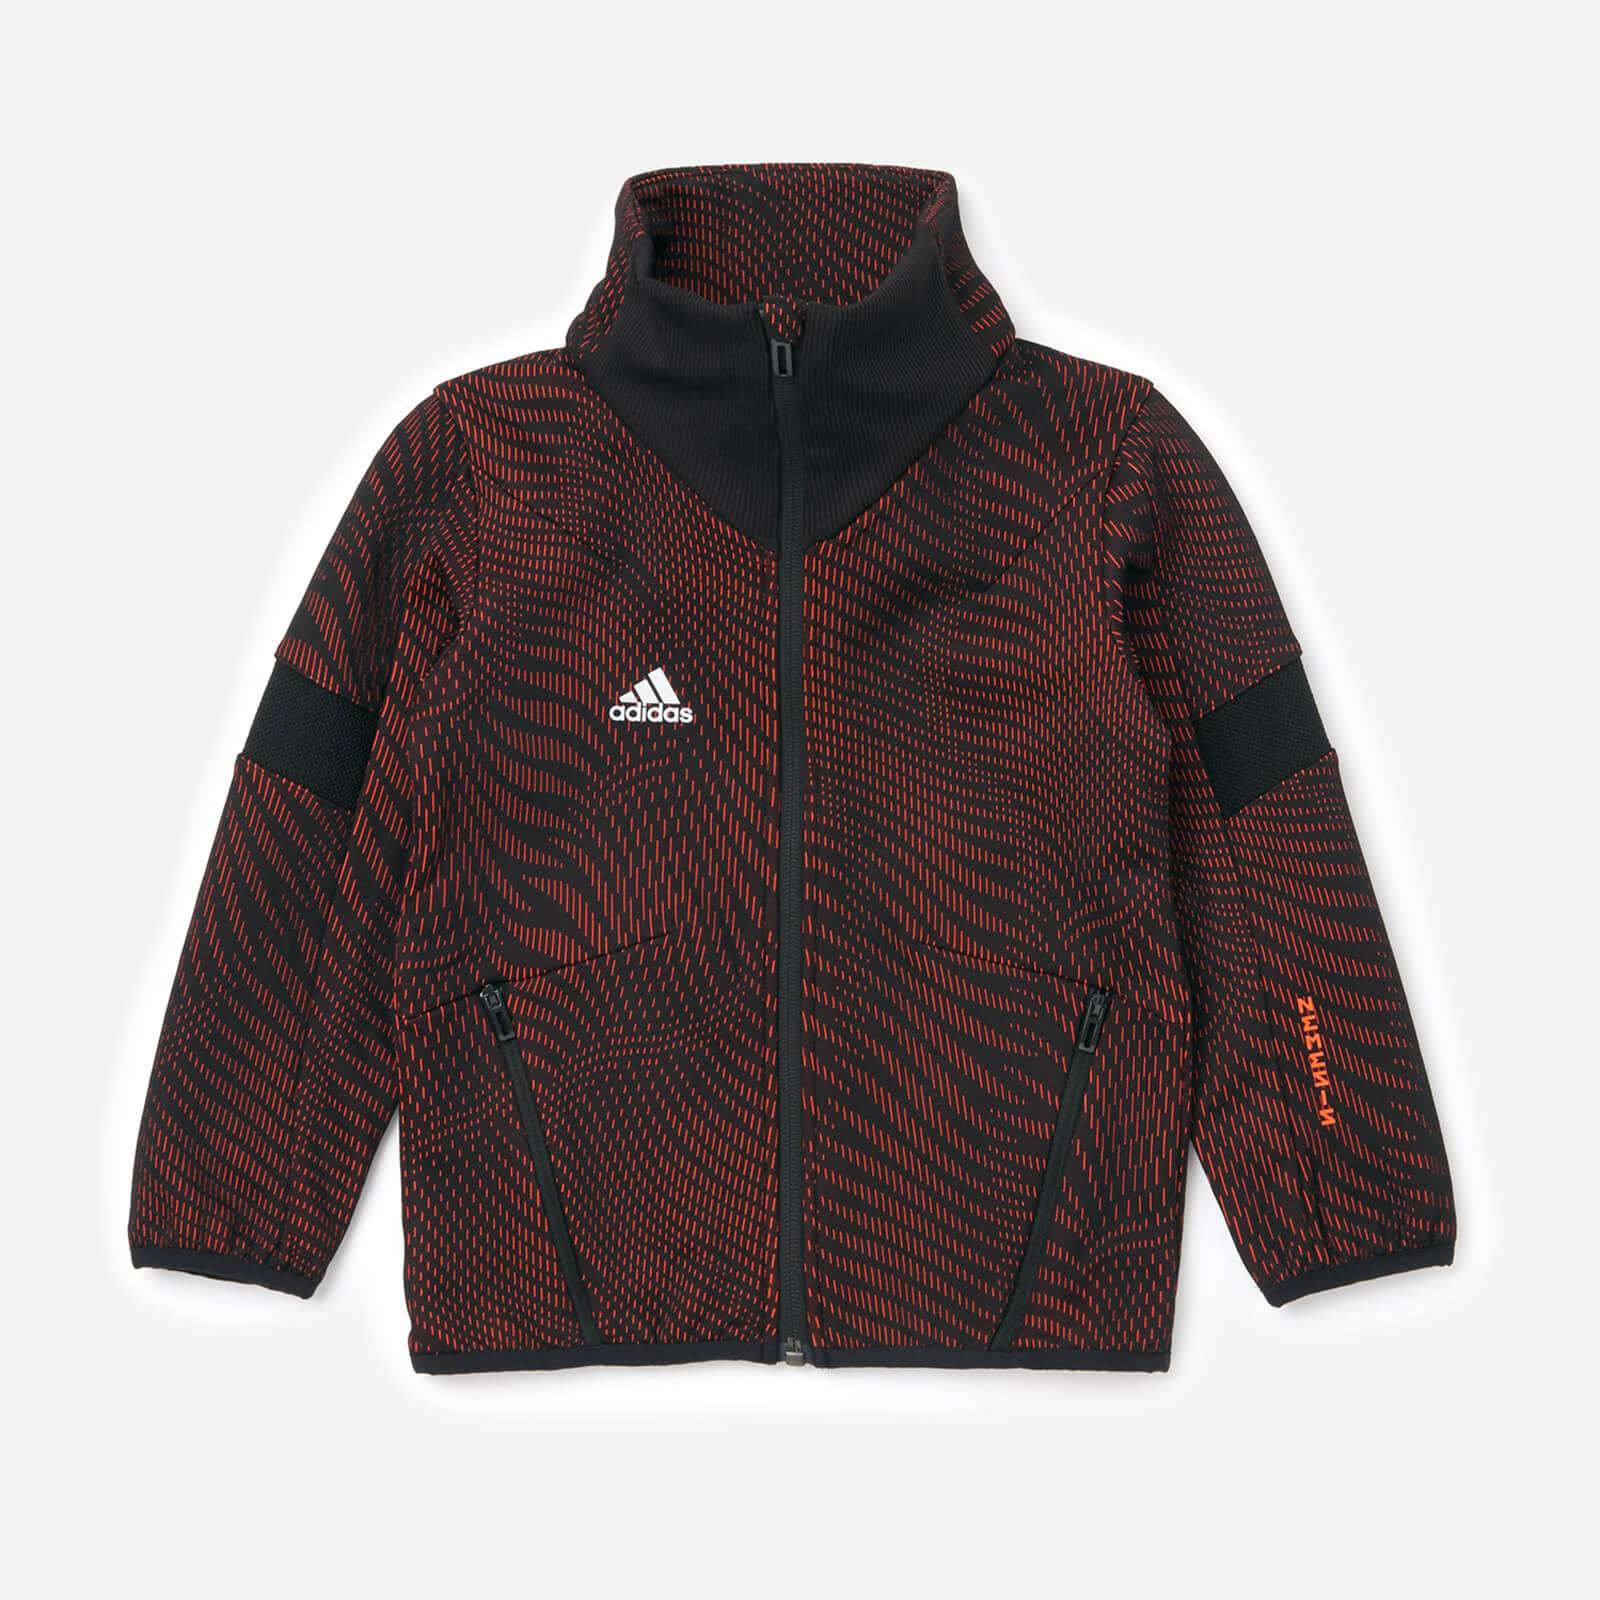 adidas Boys' Young Boys Nemis Top - Red - 4-5 years